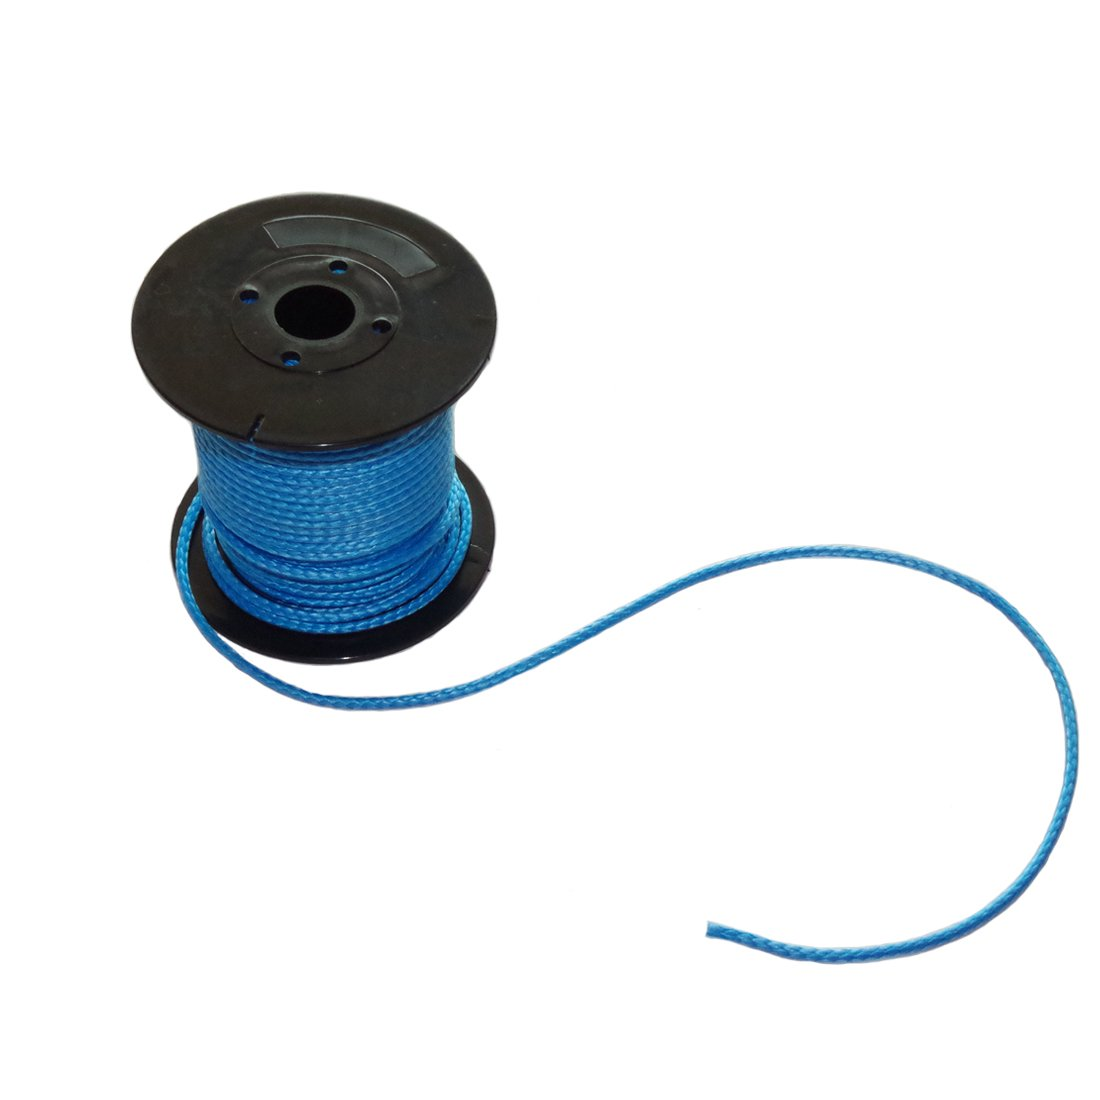 Pro-Rope Heavy Duty Multifunctional Blue Rope 7/64'' X 104 Ft Spools